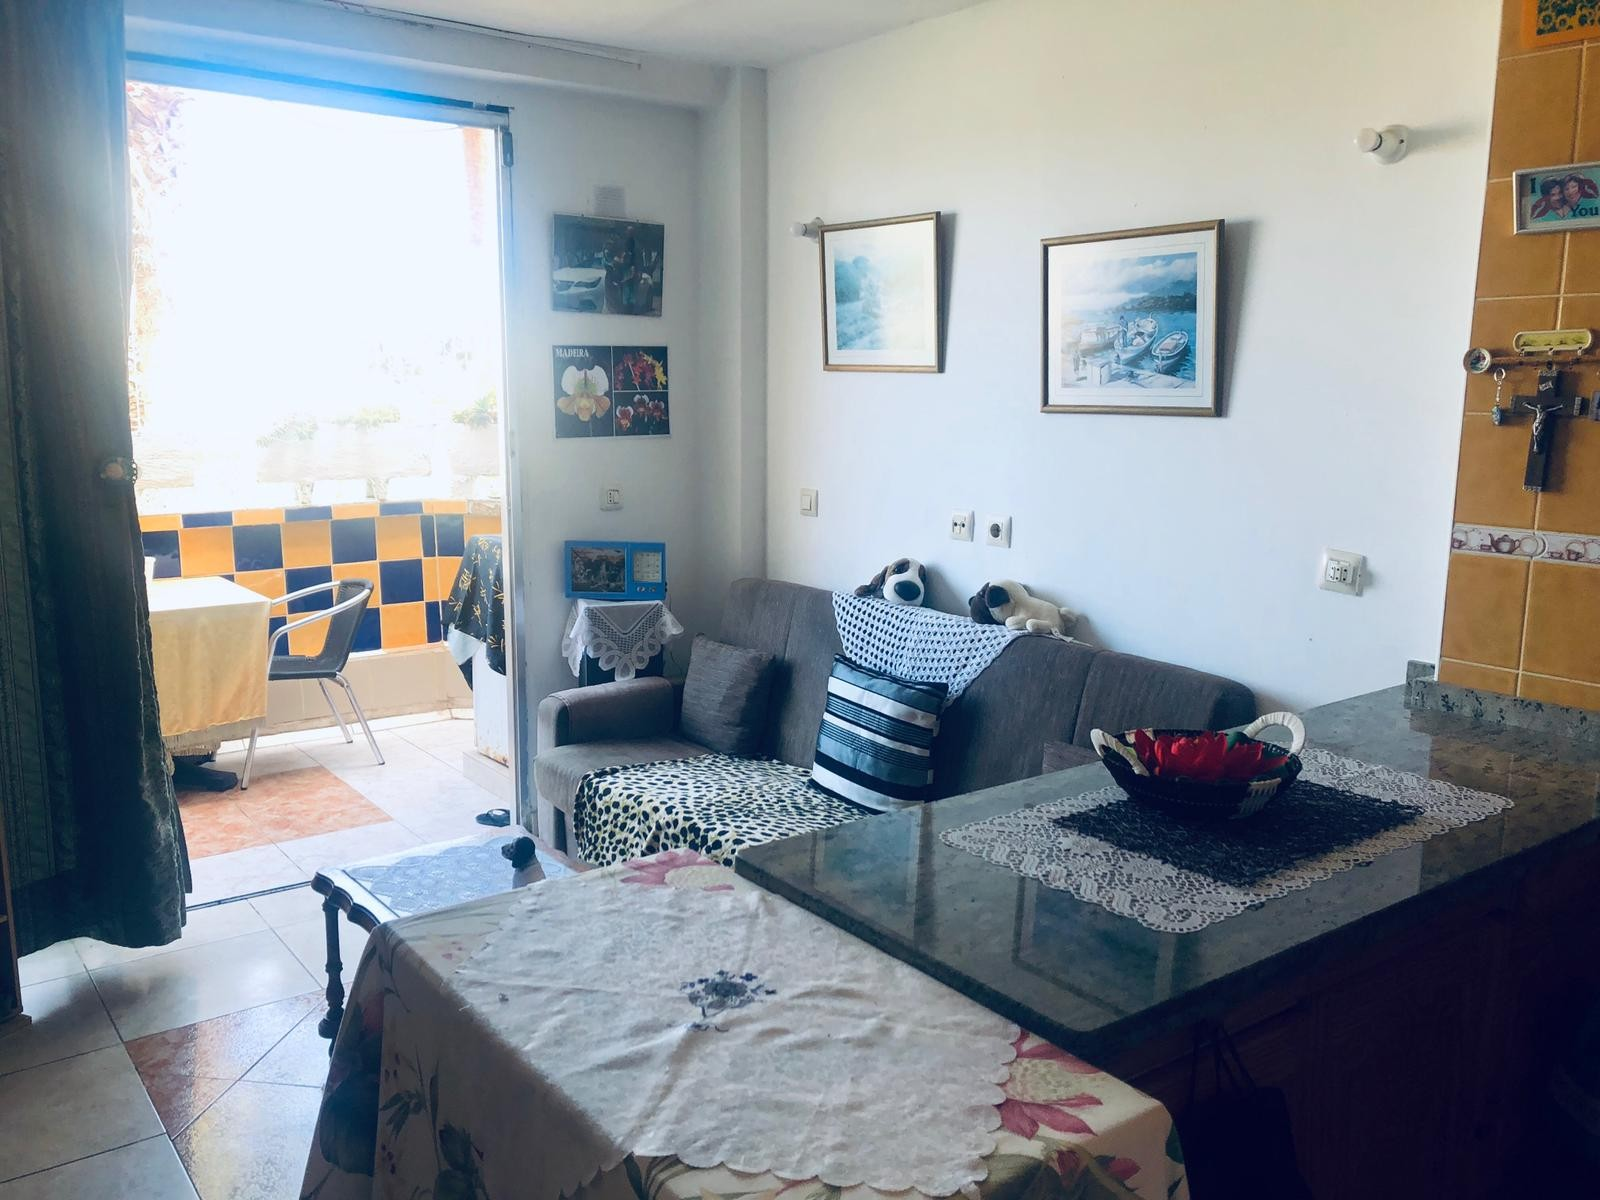 vente appartement 1 chambre playa las americas batiment playa honda atlantic immo 2